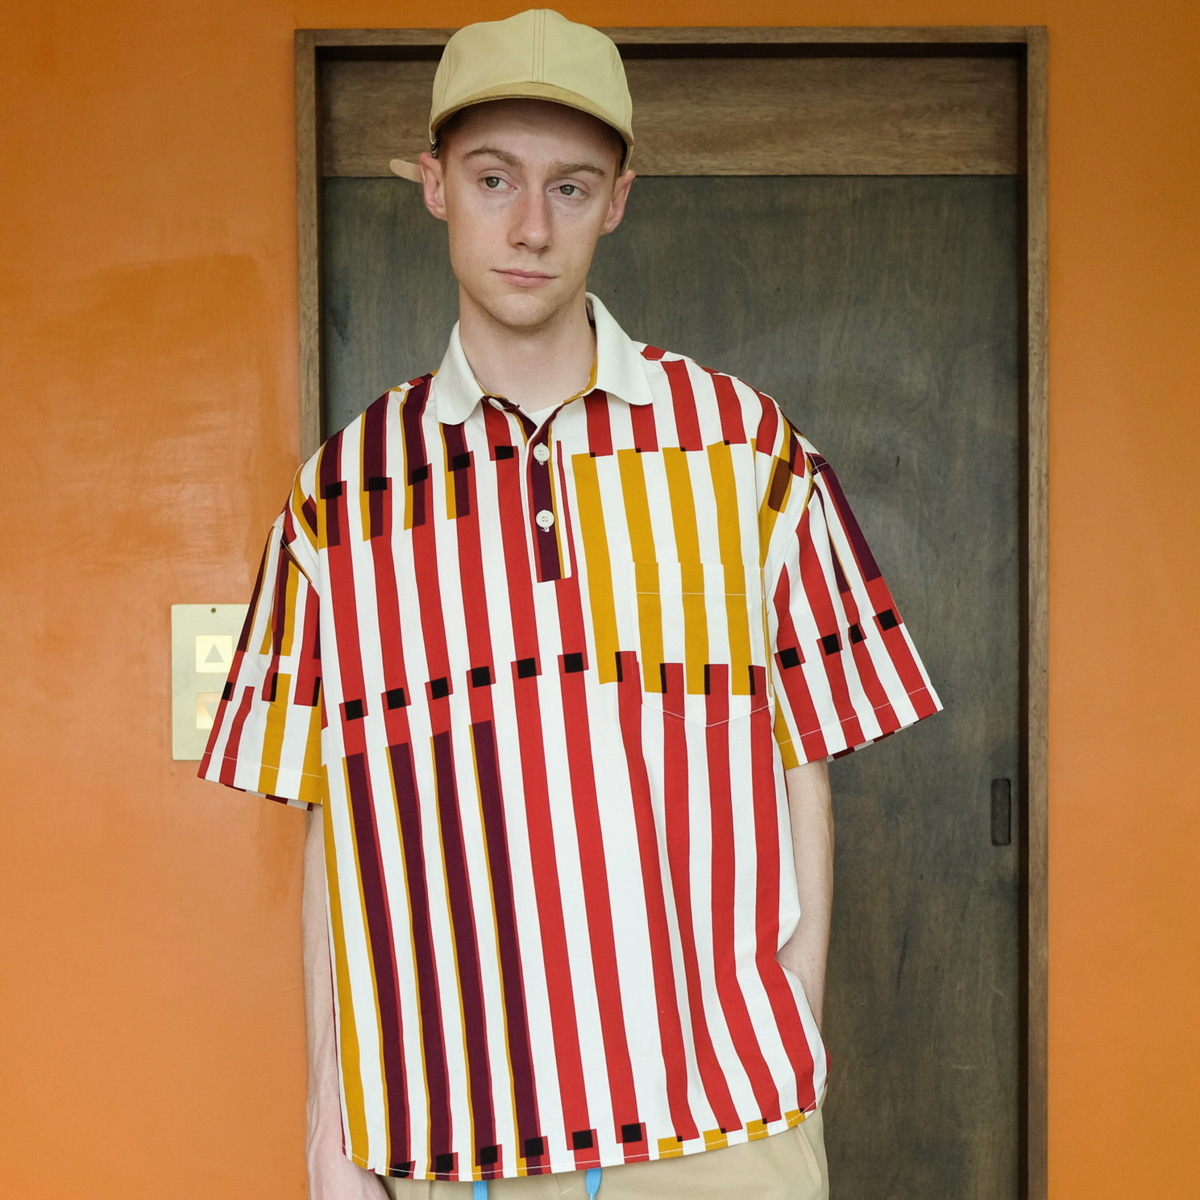 [DAILY INN] LOBBY BOY OVERSIZED PIQUE SHIRTS 'REMIX STRIPE'